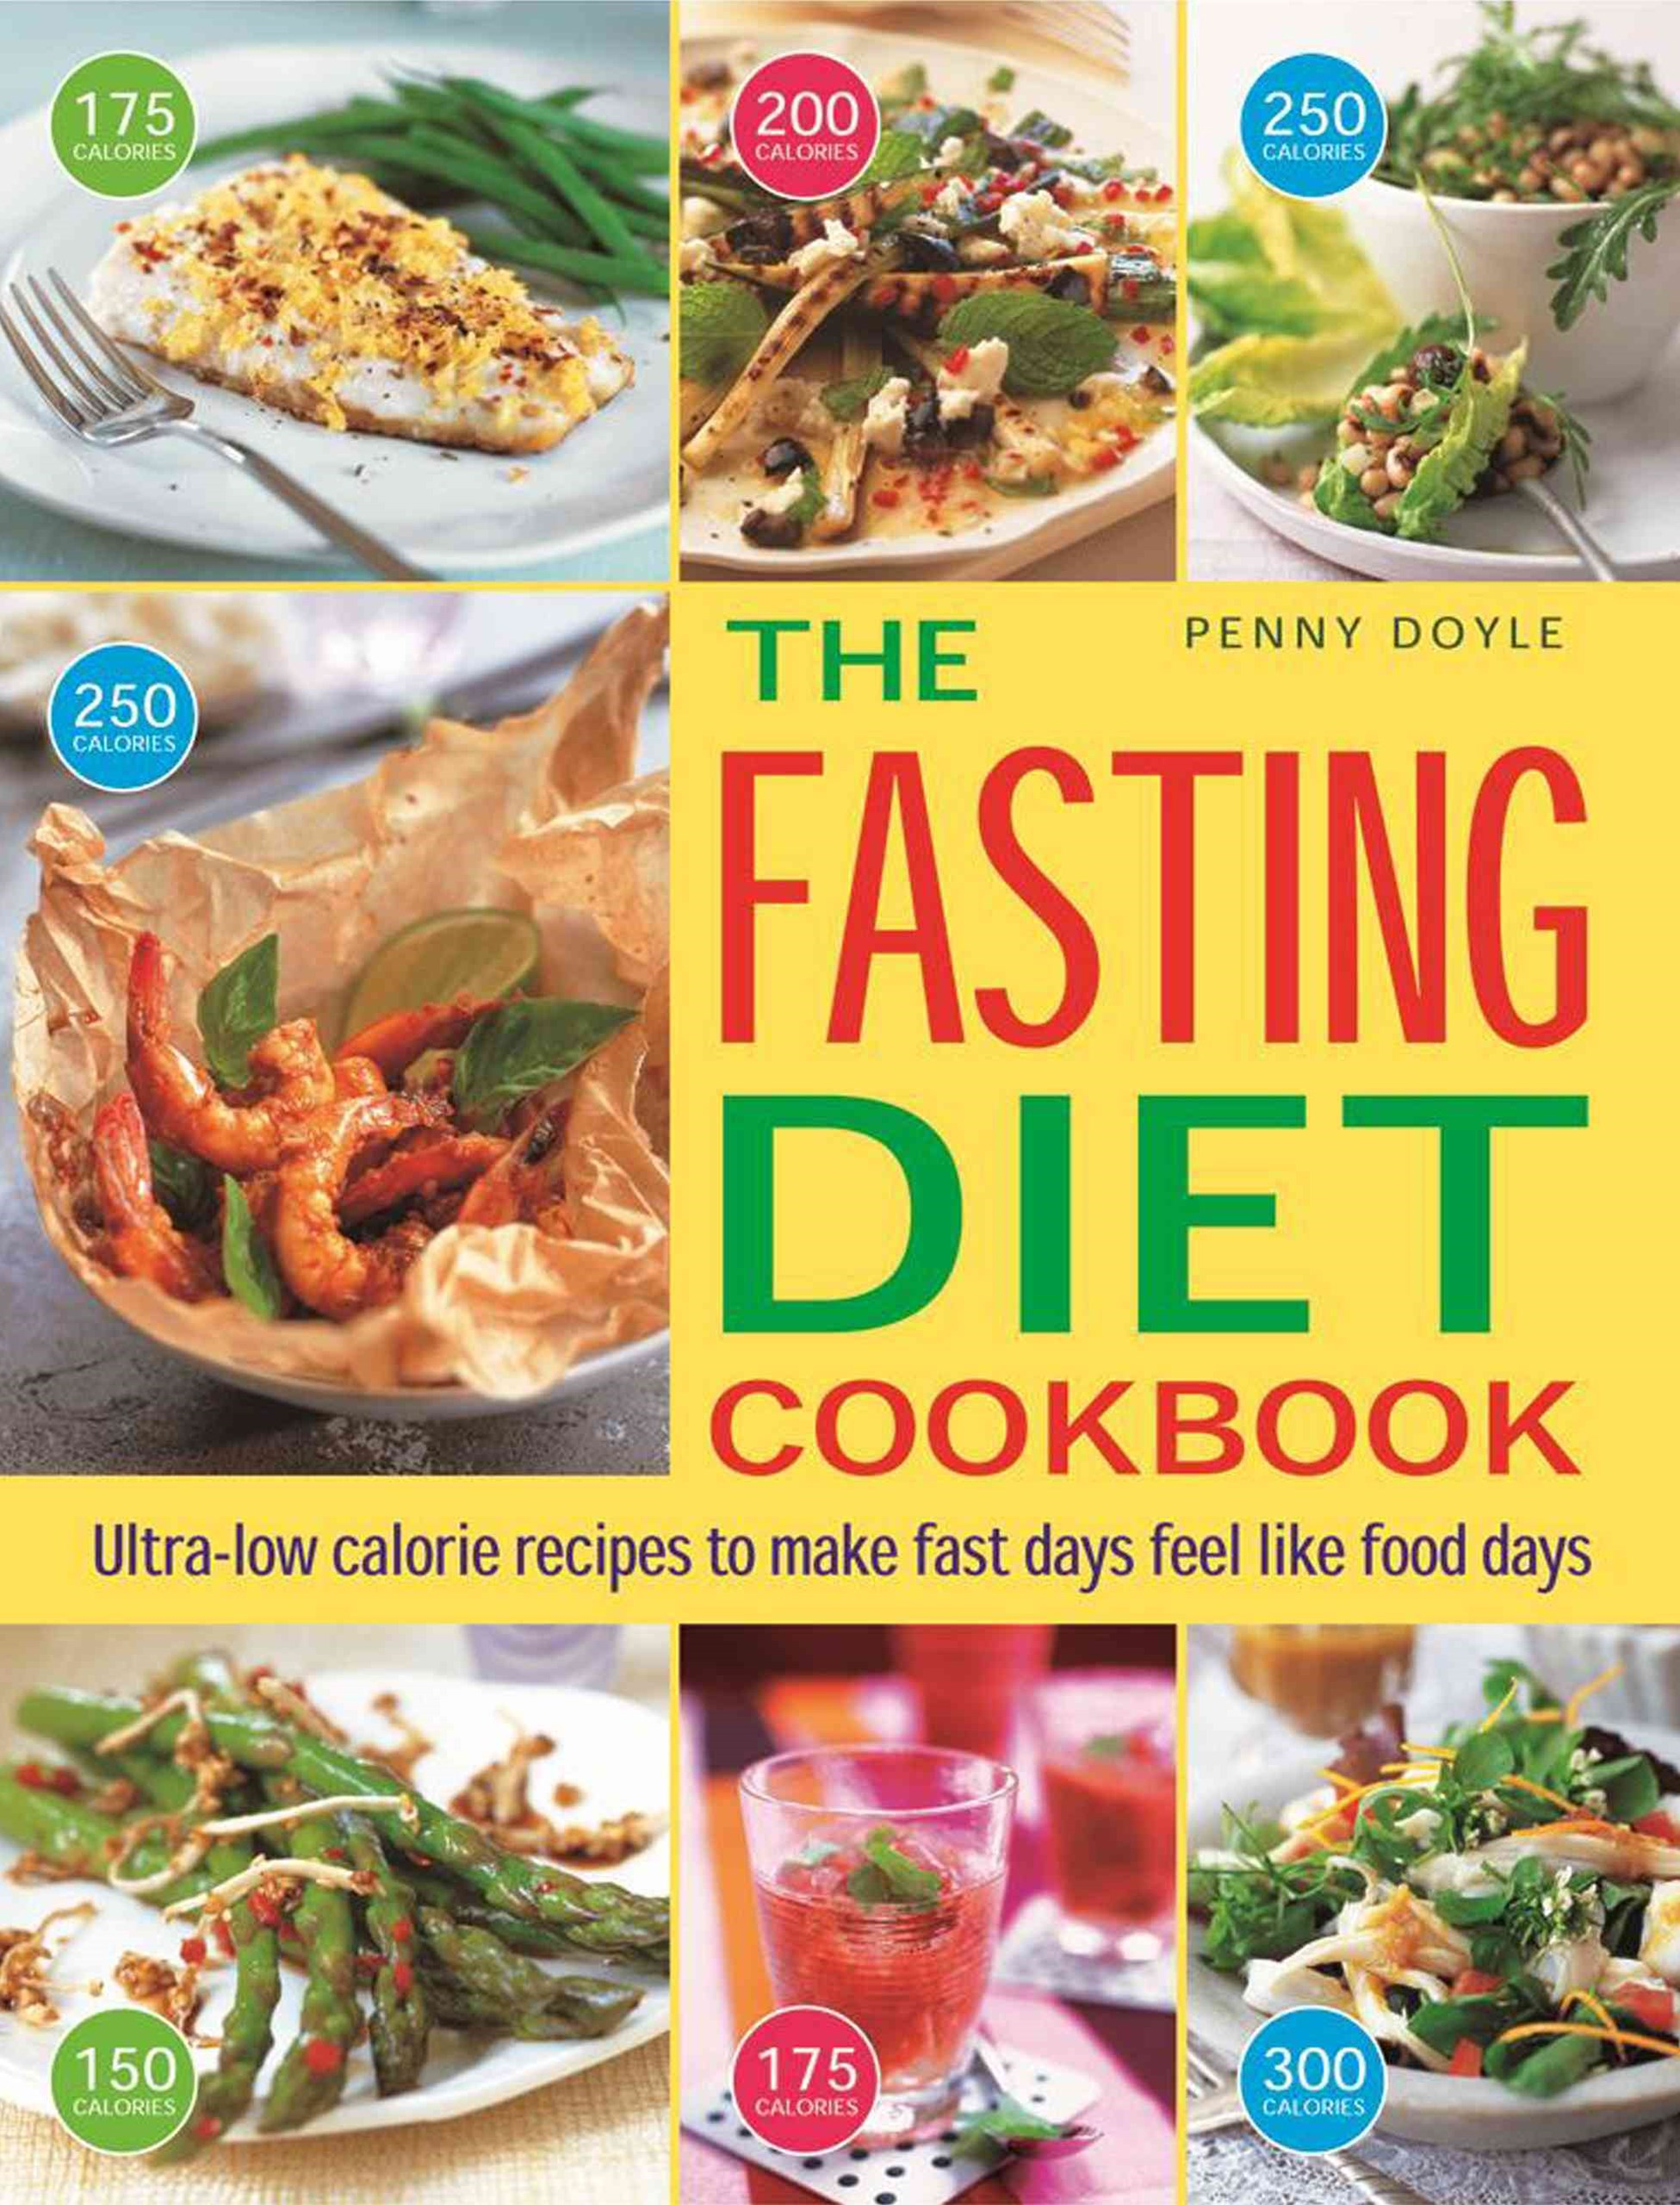 Easy Fasting Diet Cookbook